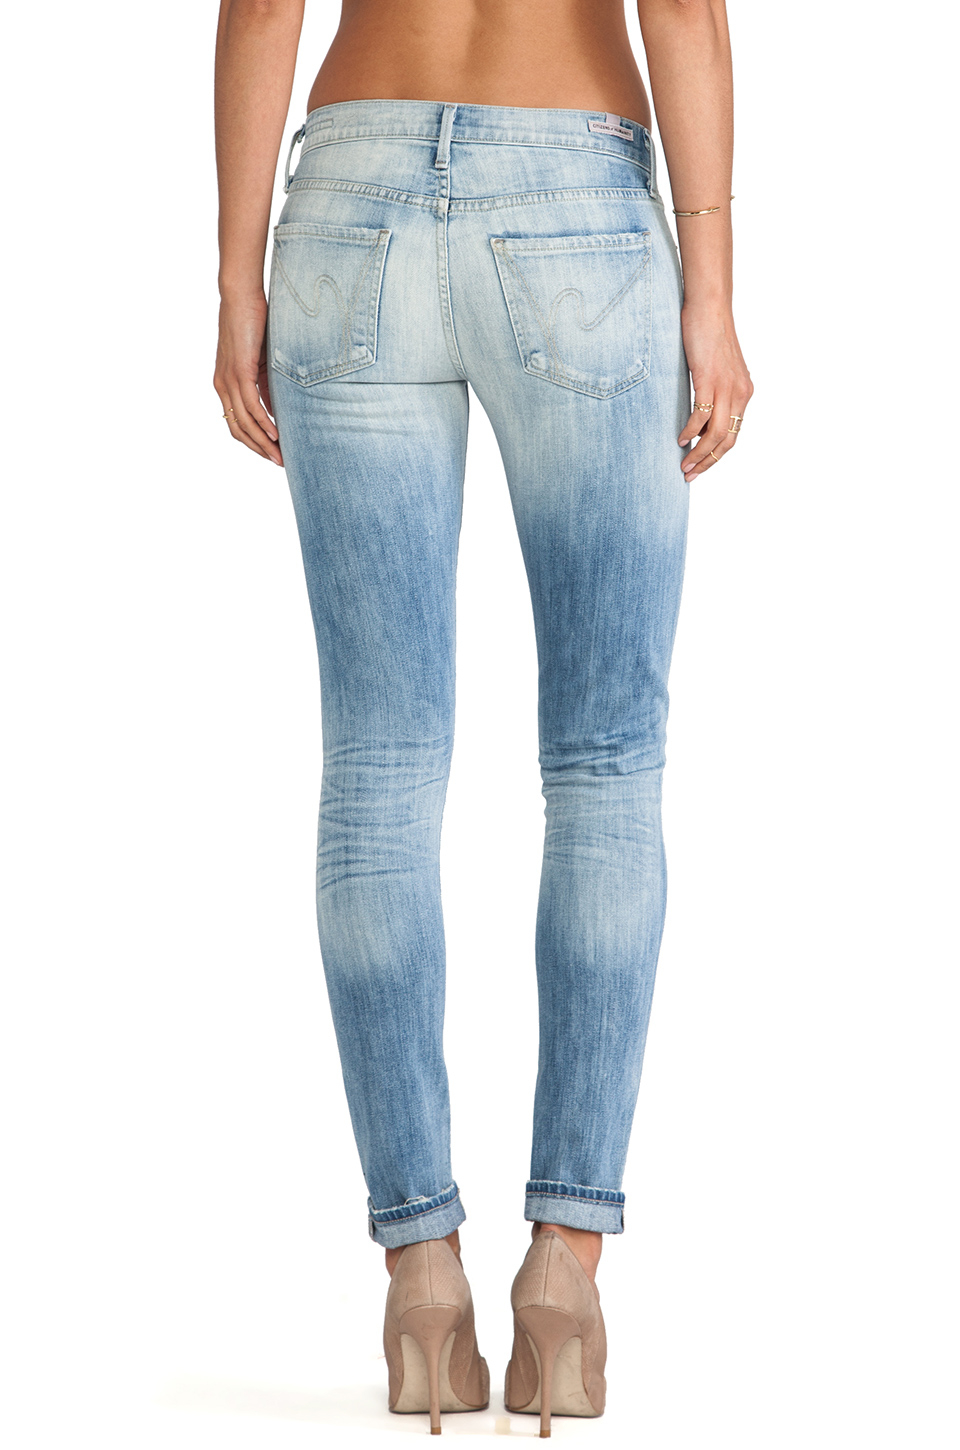 Citizens of humanity Avedon Ultra Skinny in Blue (Fade) | Lyst